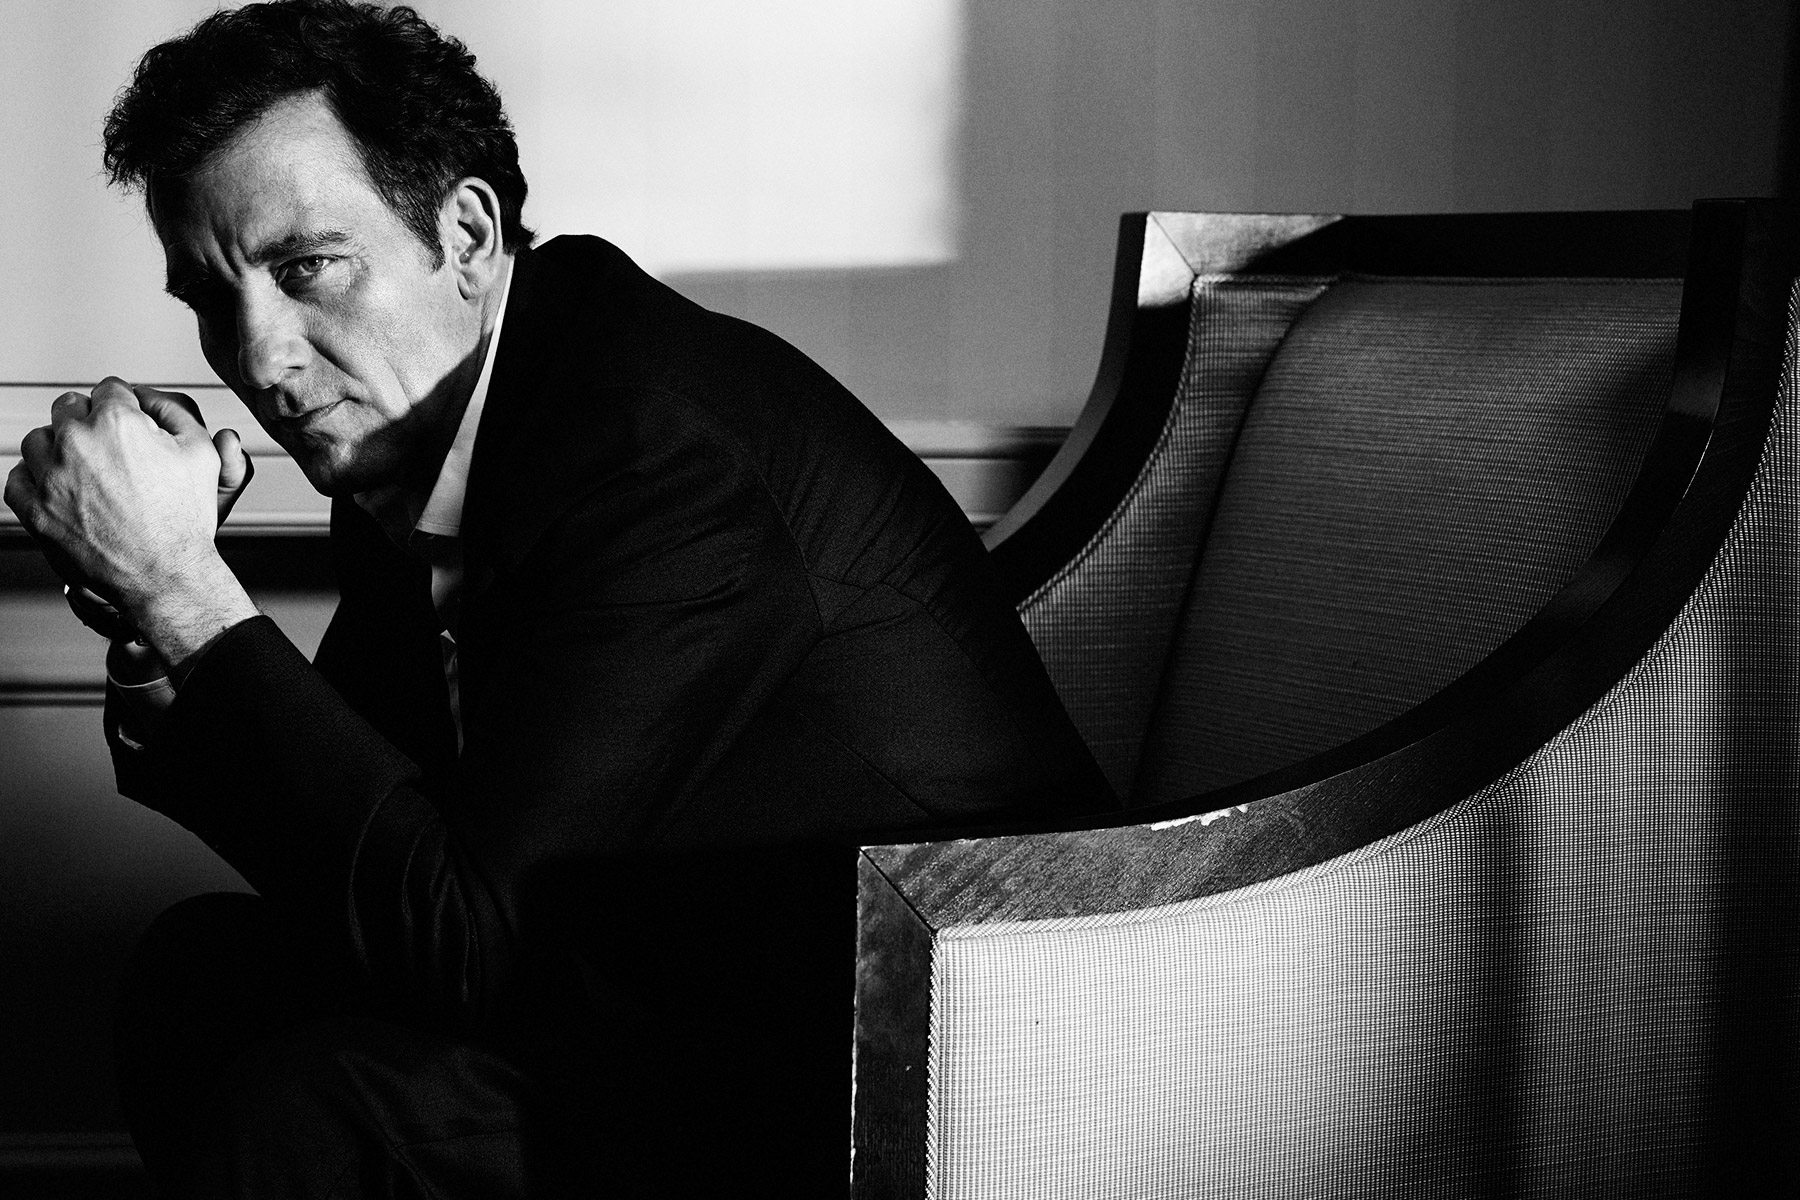 Clive Owen photographed by Scott Council